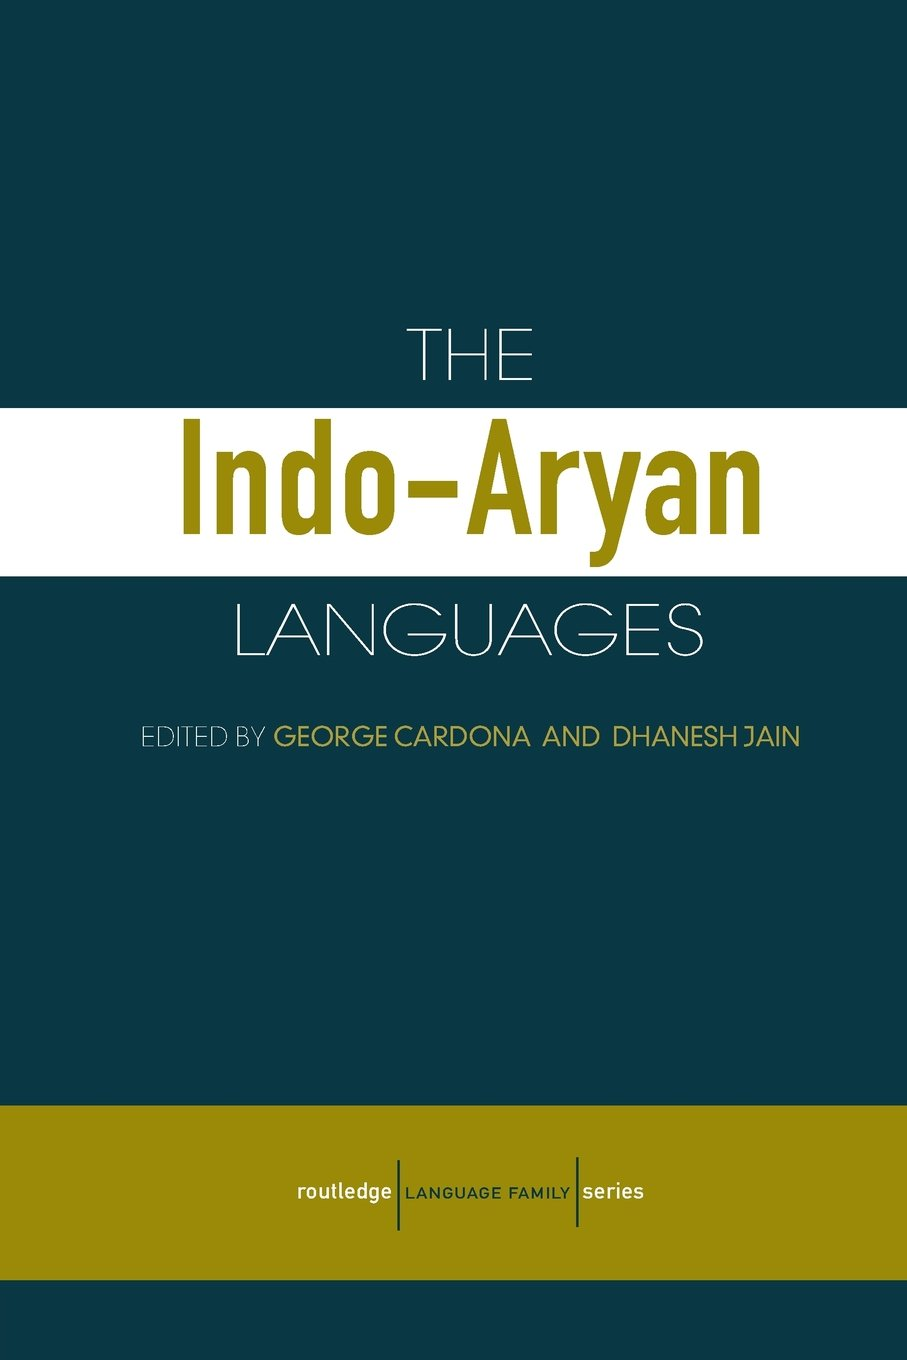 The Indo-Aryan Languages (Routledge Language Family Series)